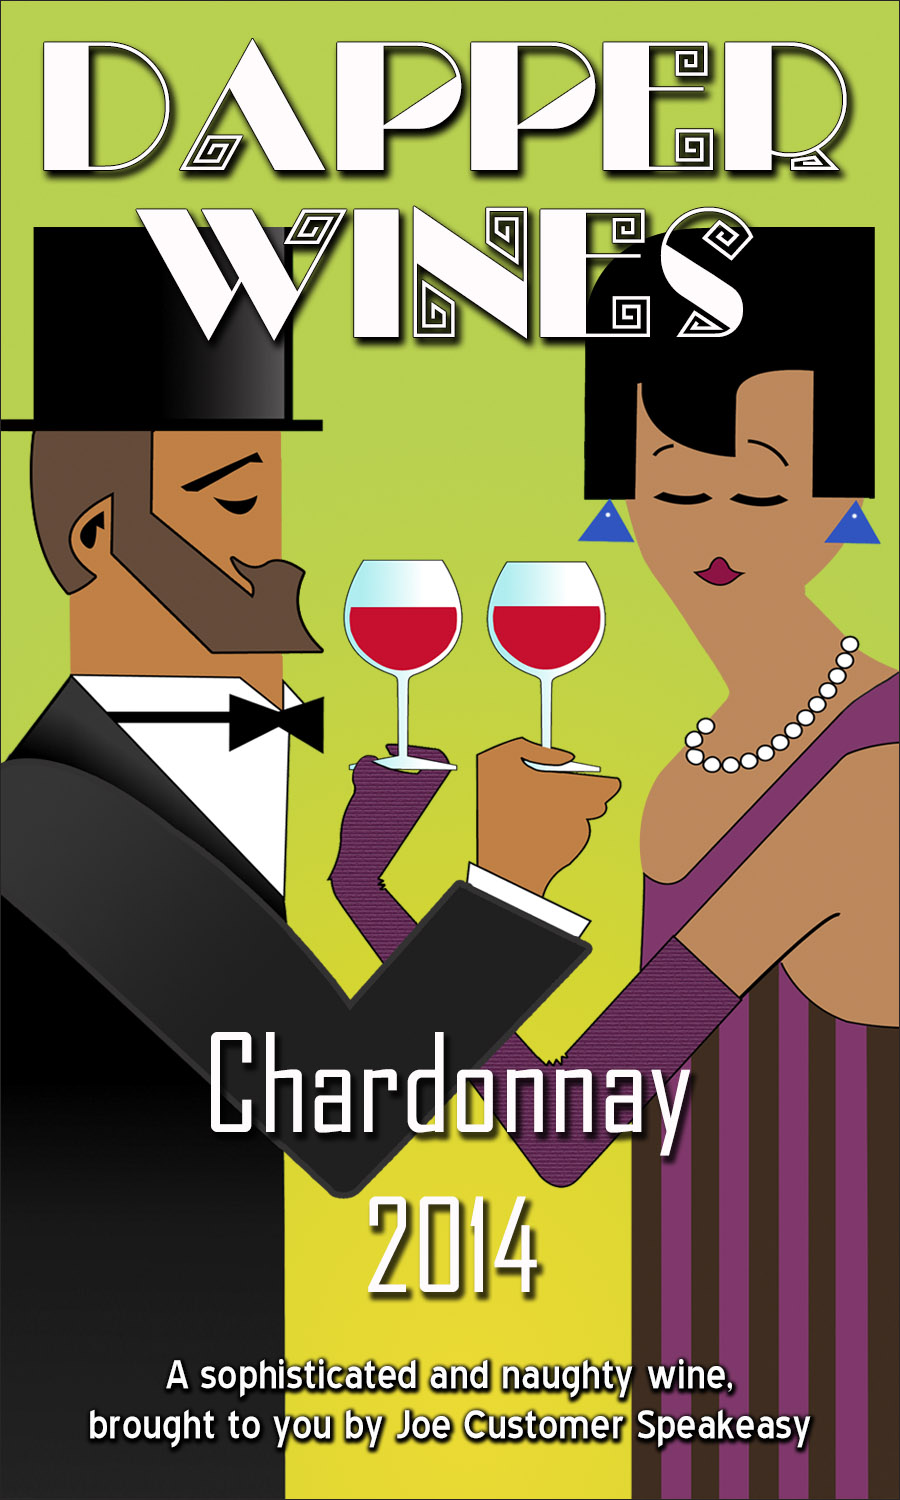 custom wine label showing Art Deco inspired artwork of man and woman in formal dress with wine glass